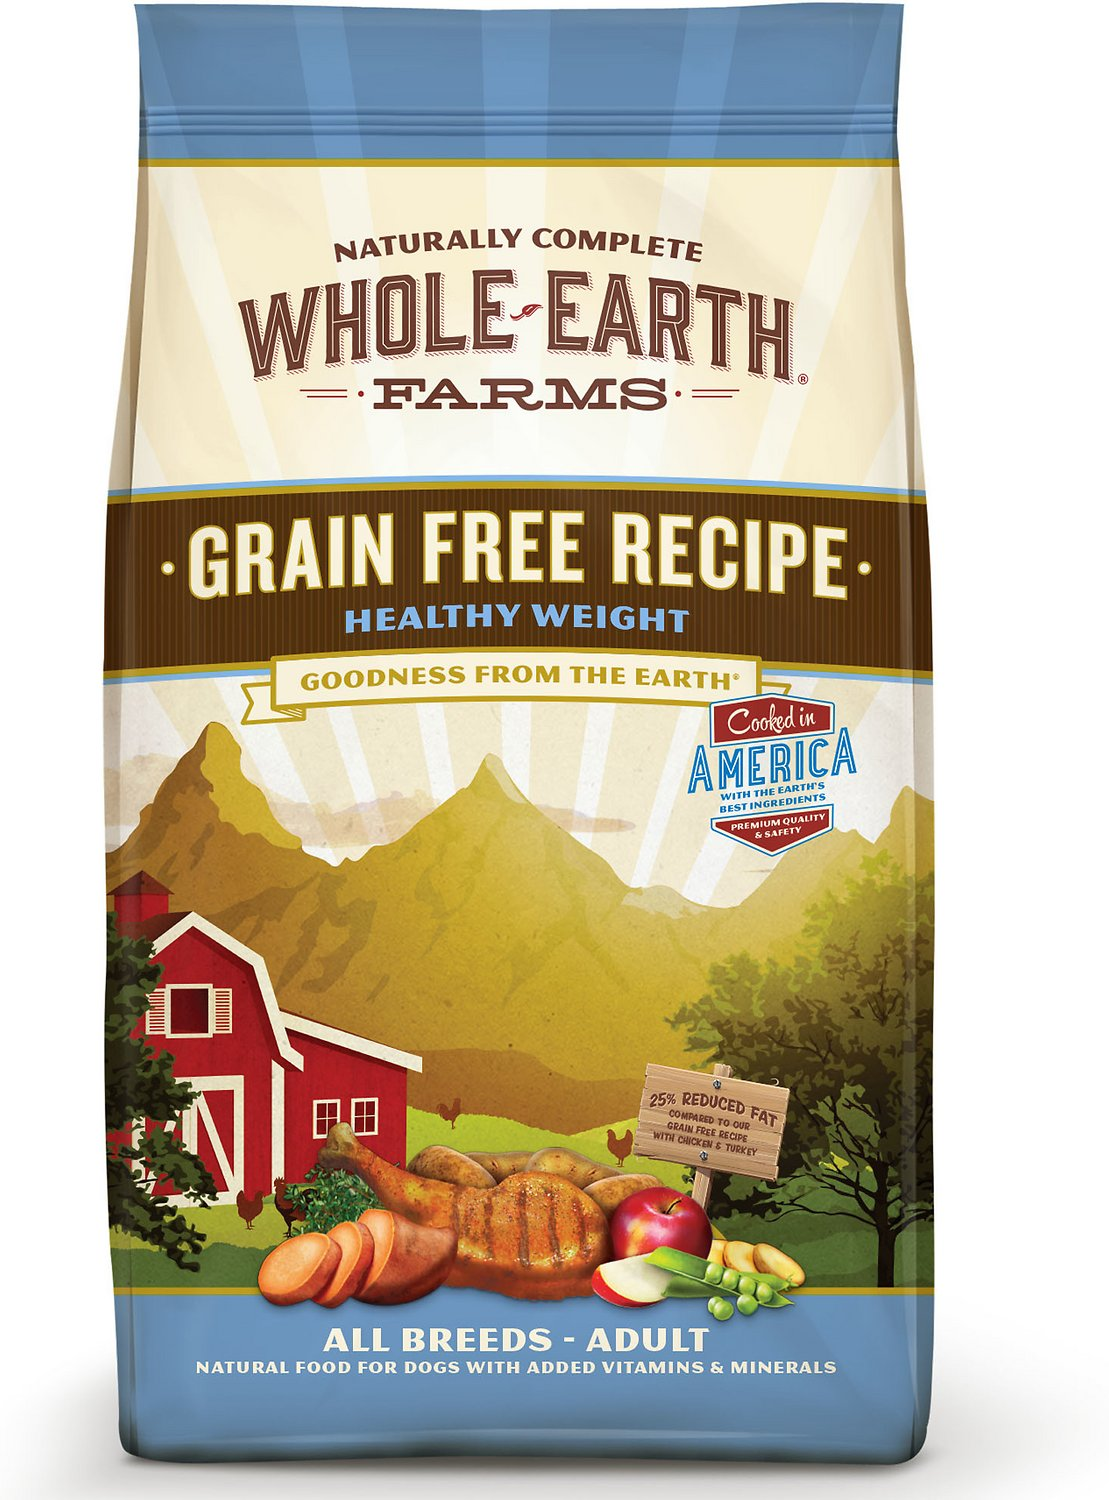 Whole earth farms grain free healthy weight dry dog food 25 lb bag whole earth farms grain free healthy weight dry dog food 25 lb bag chewy forumfinder Gallery